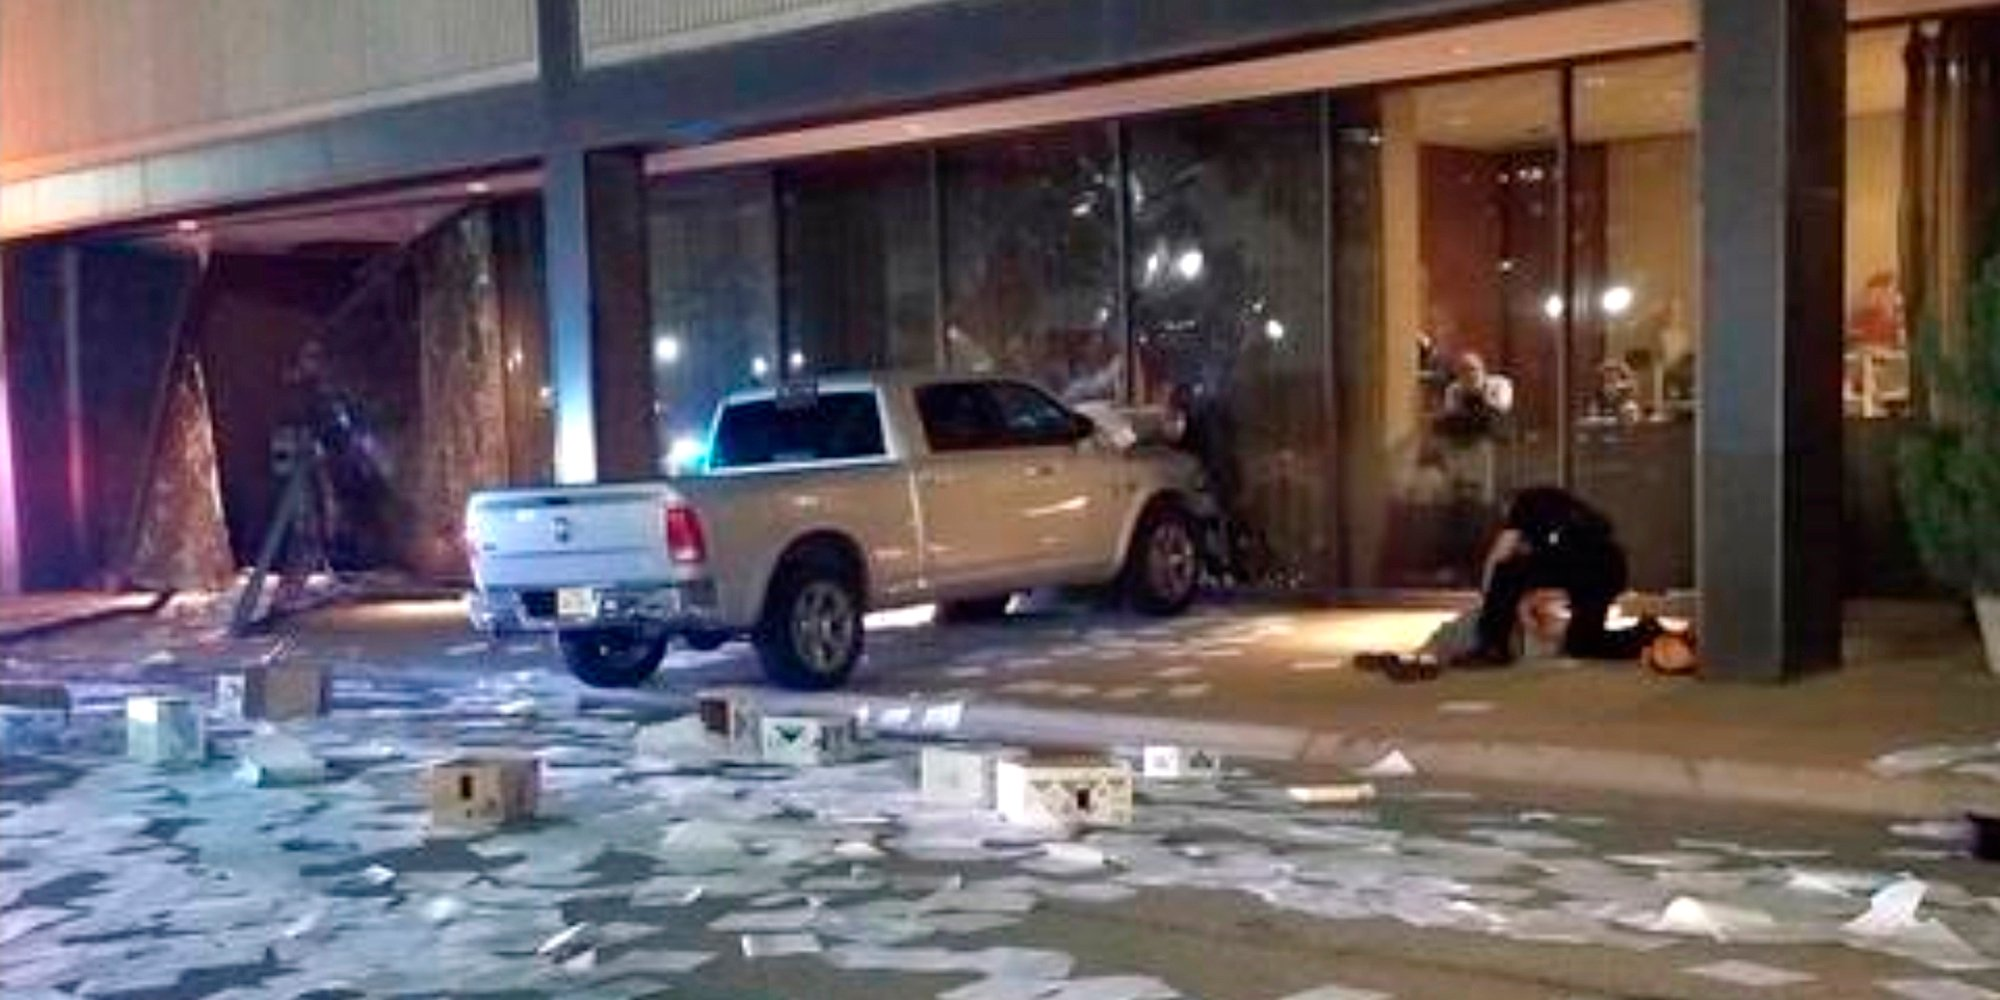 Man arrested after crashing truck into Dallas TV station